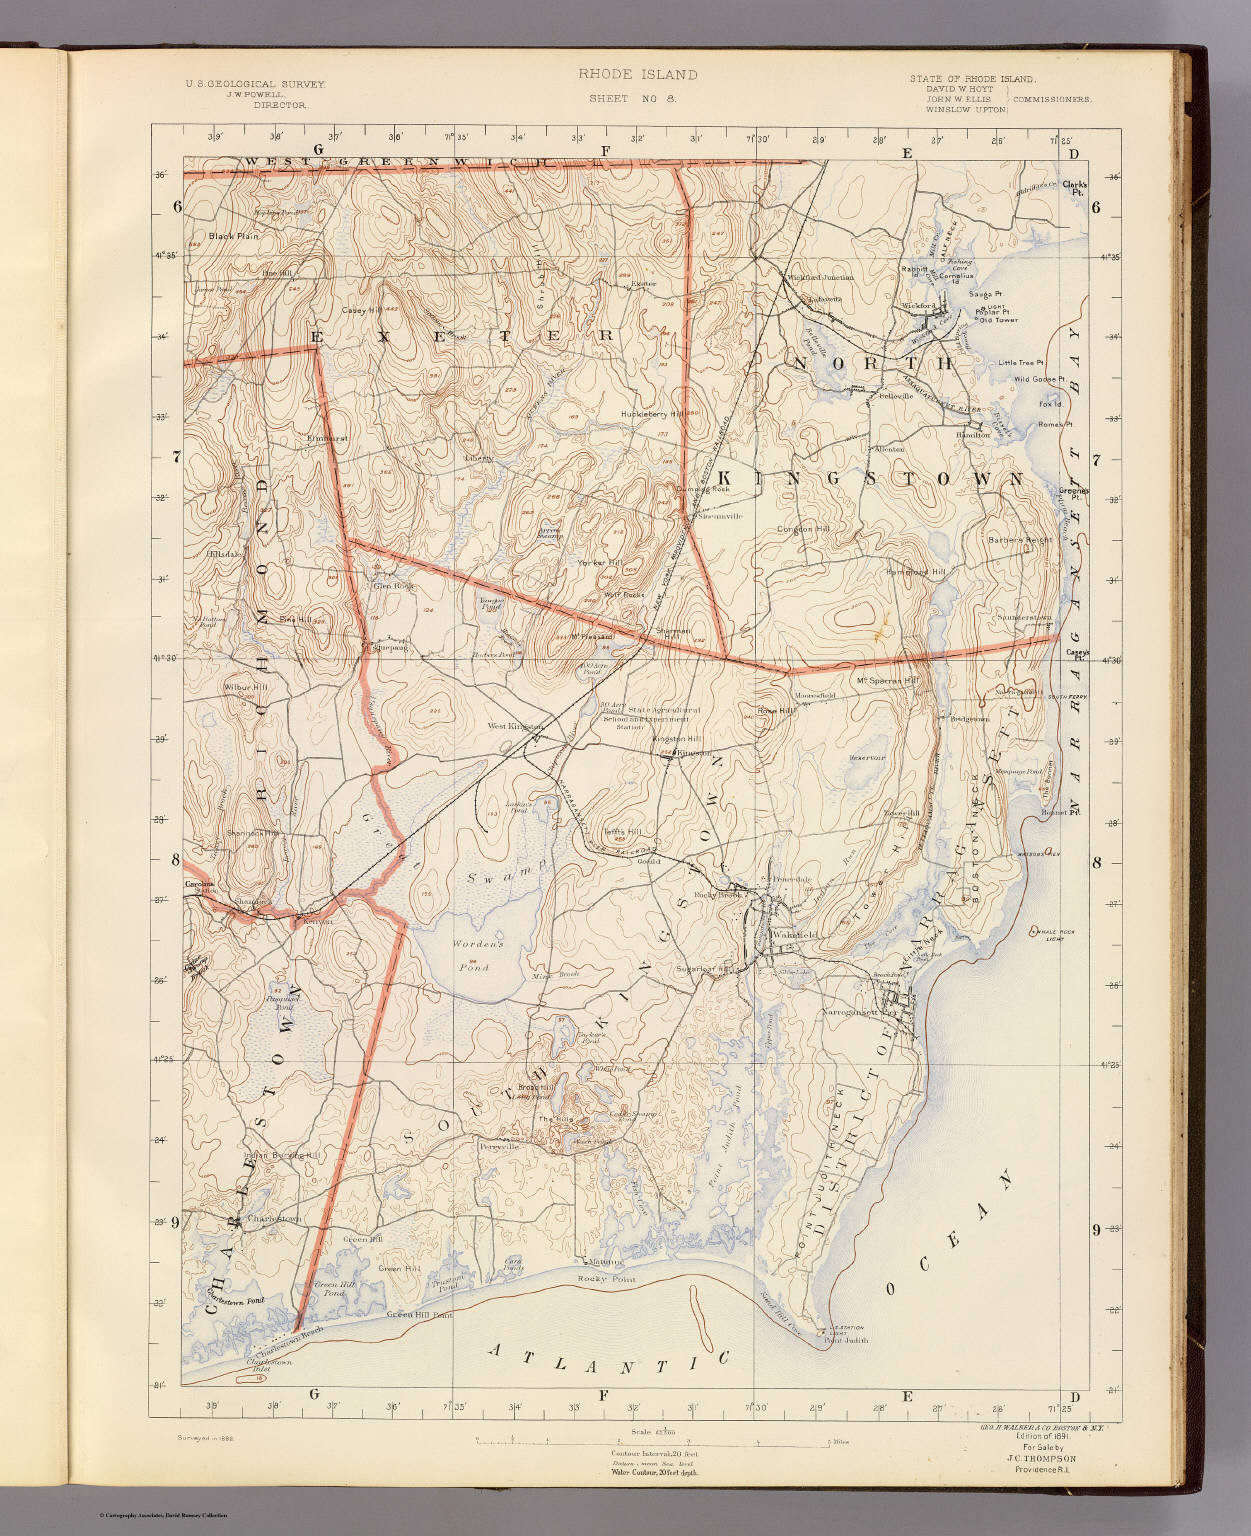 Genealogys Star Travels On The Web Resources For Genealogists - Rhode island in usa map